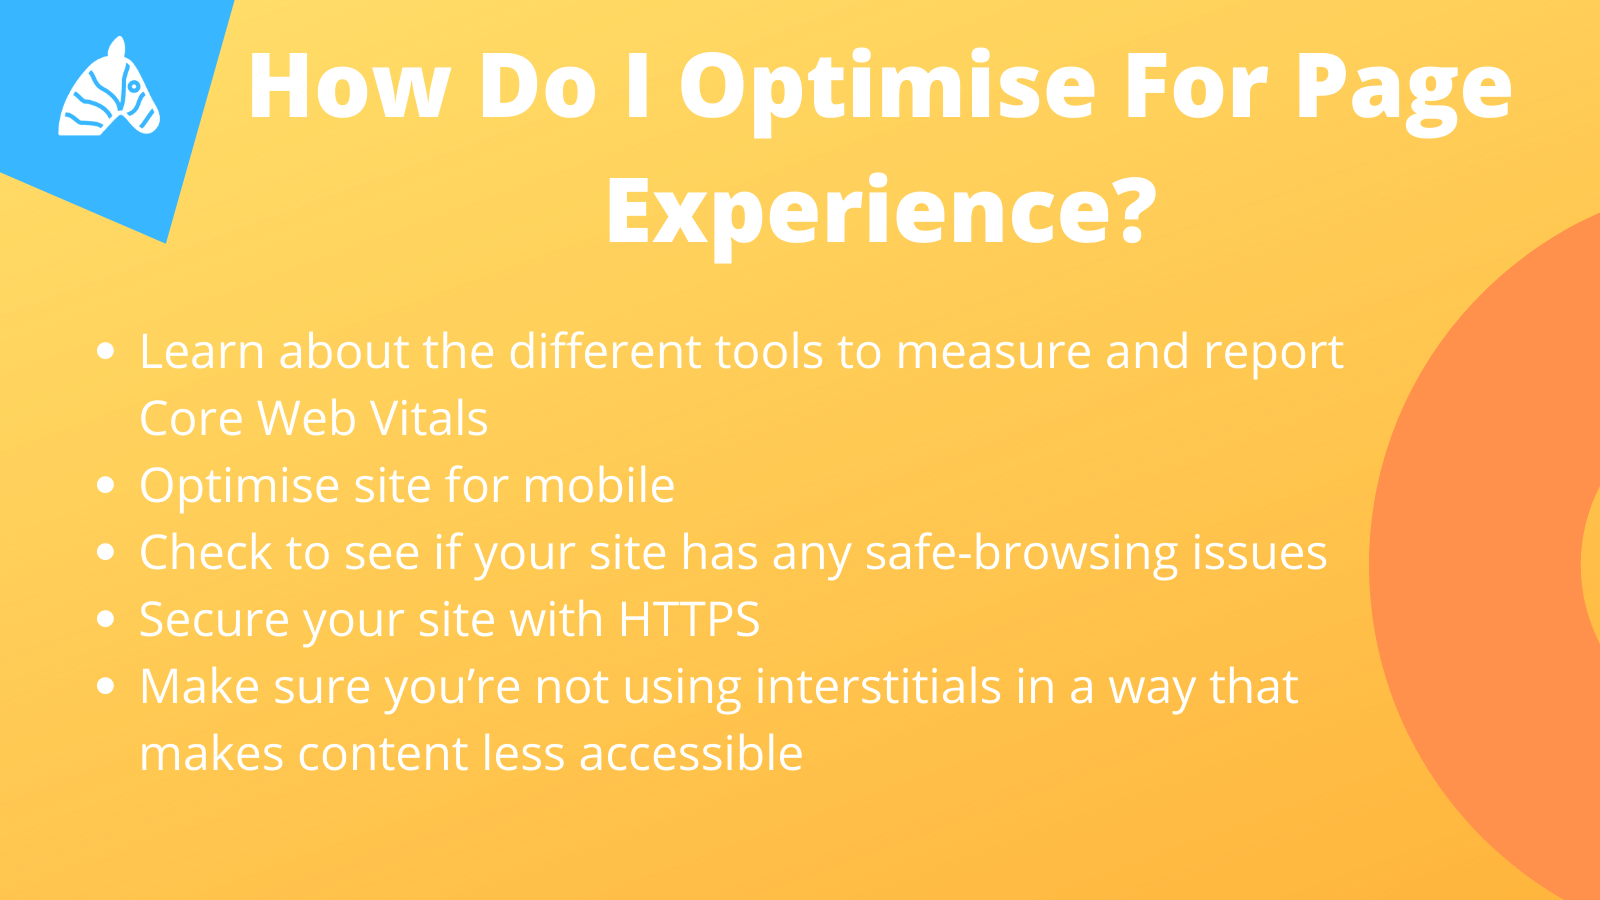 How to optimise for page experience